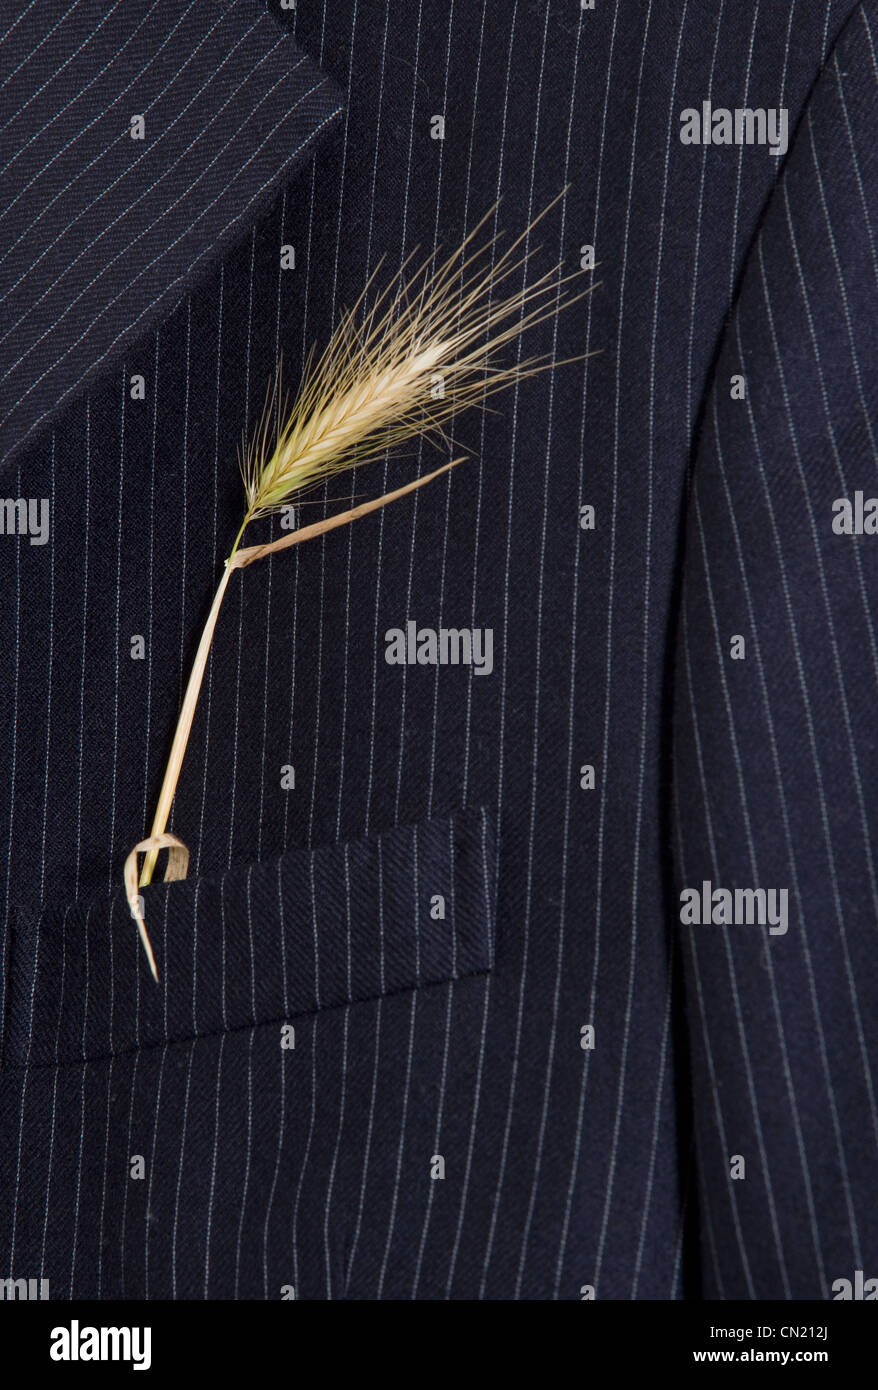 Pinstripe suit jacket with ear of corn - Stock Image